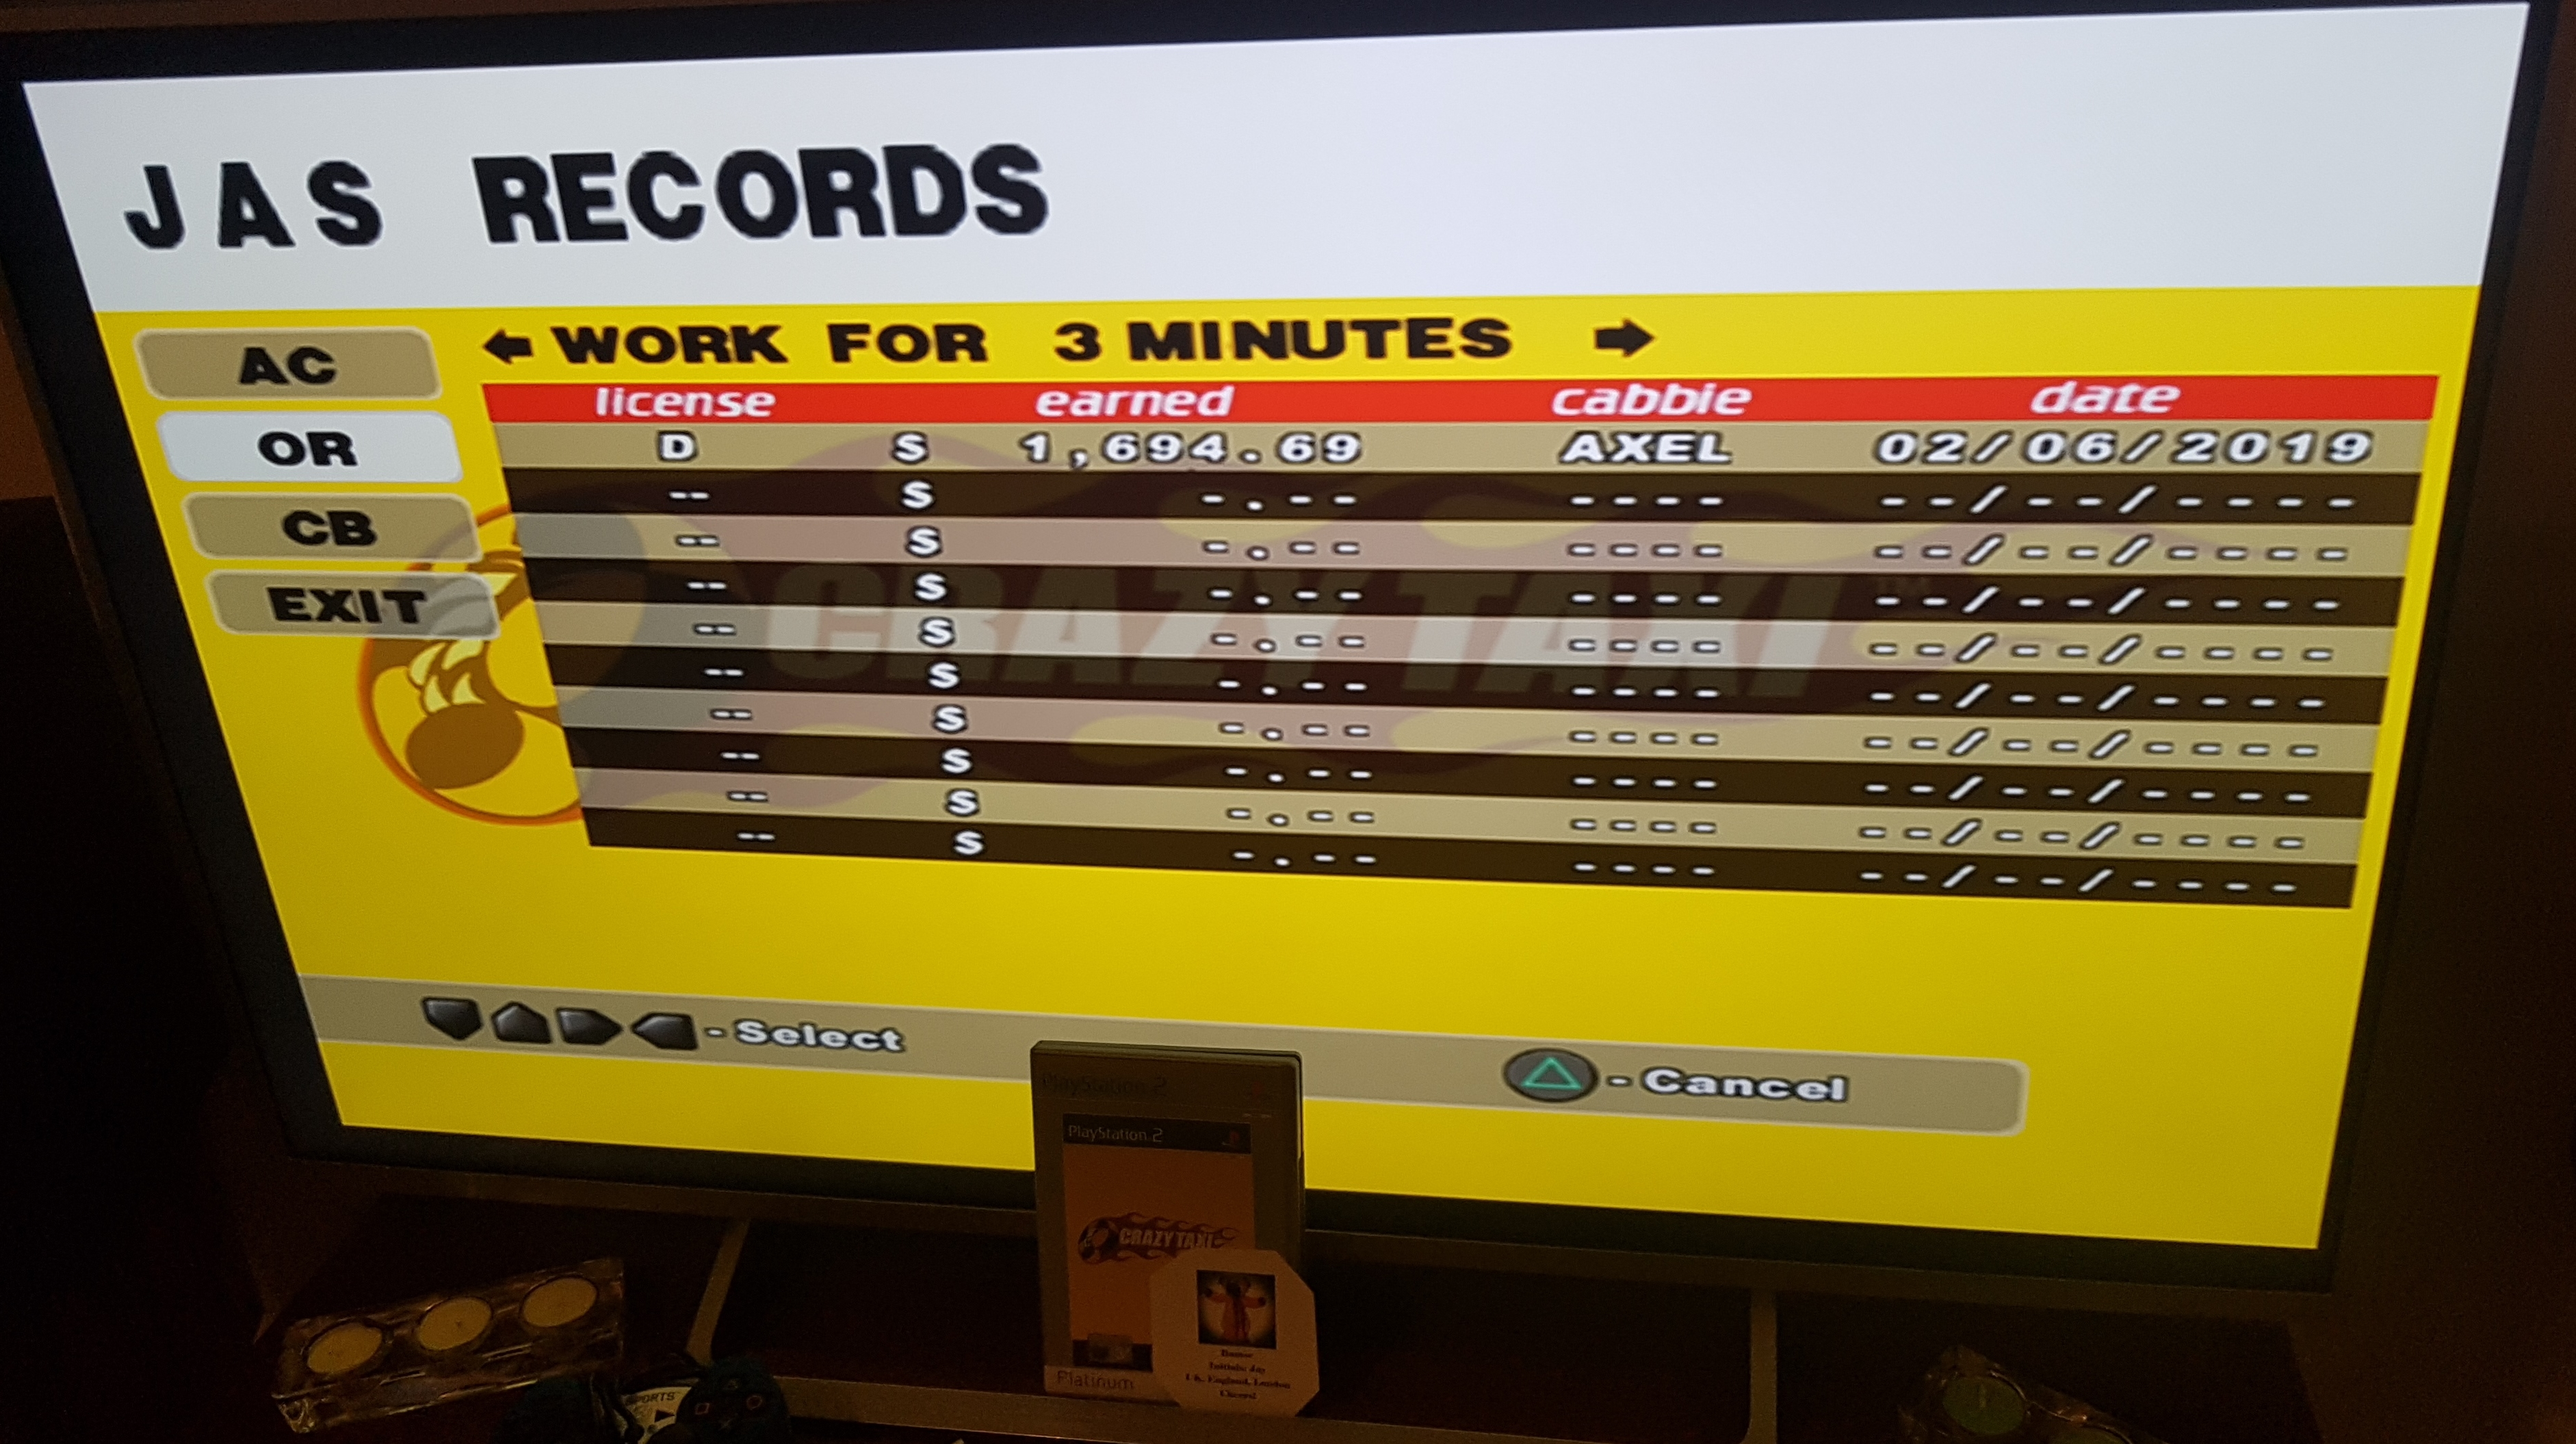 Crazy Taxi [Original/3 Minutes] 1,694 points